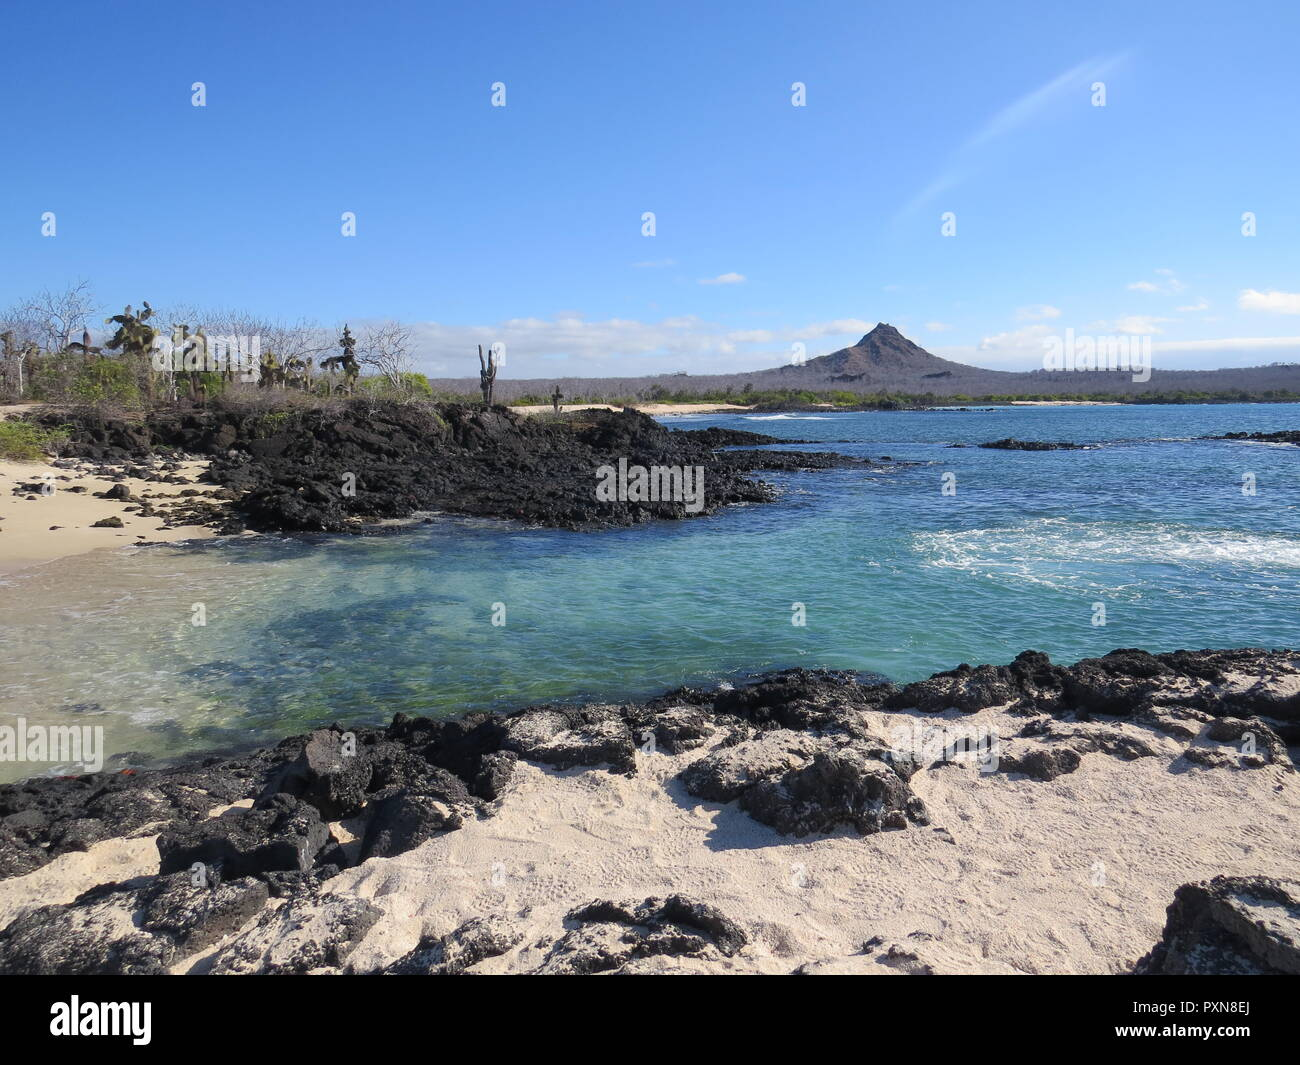 Rocky volcanic beach with inactive volcano in background, Galapagos landscape - Stock Image